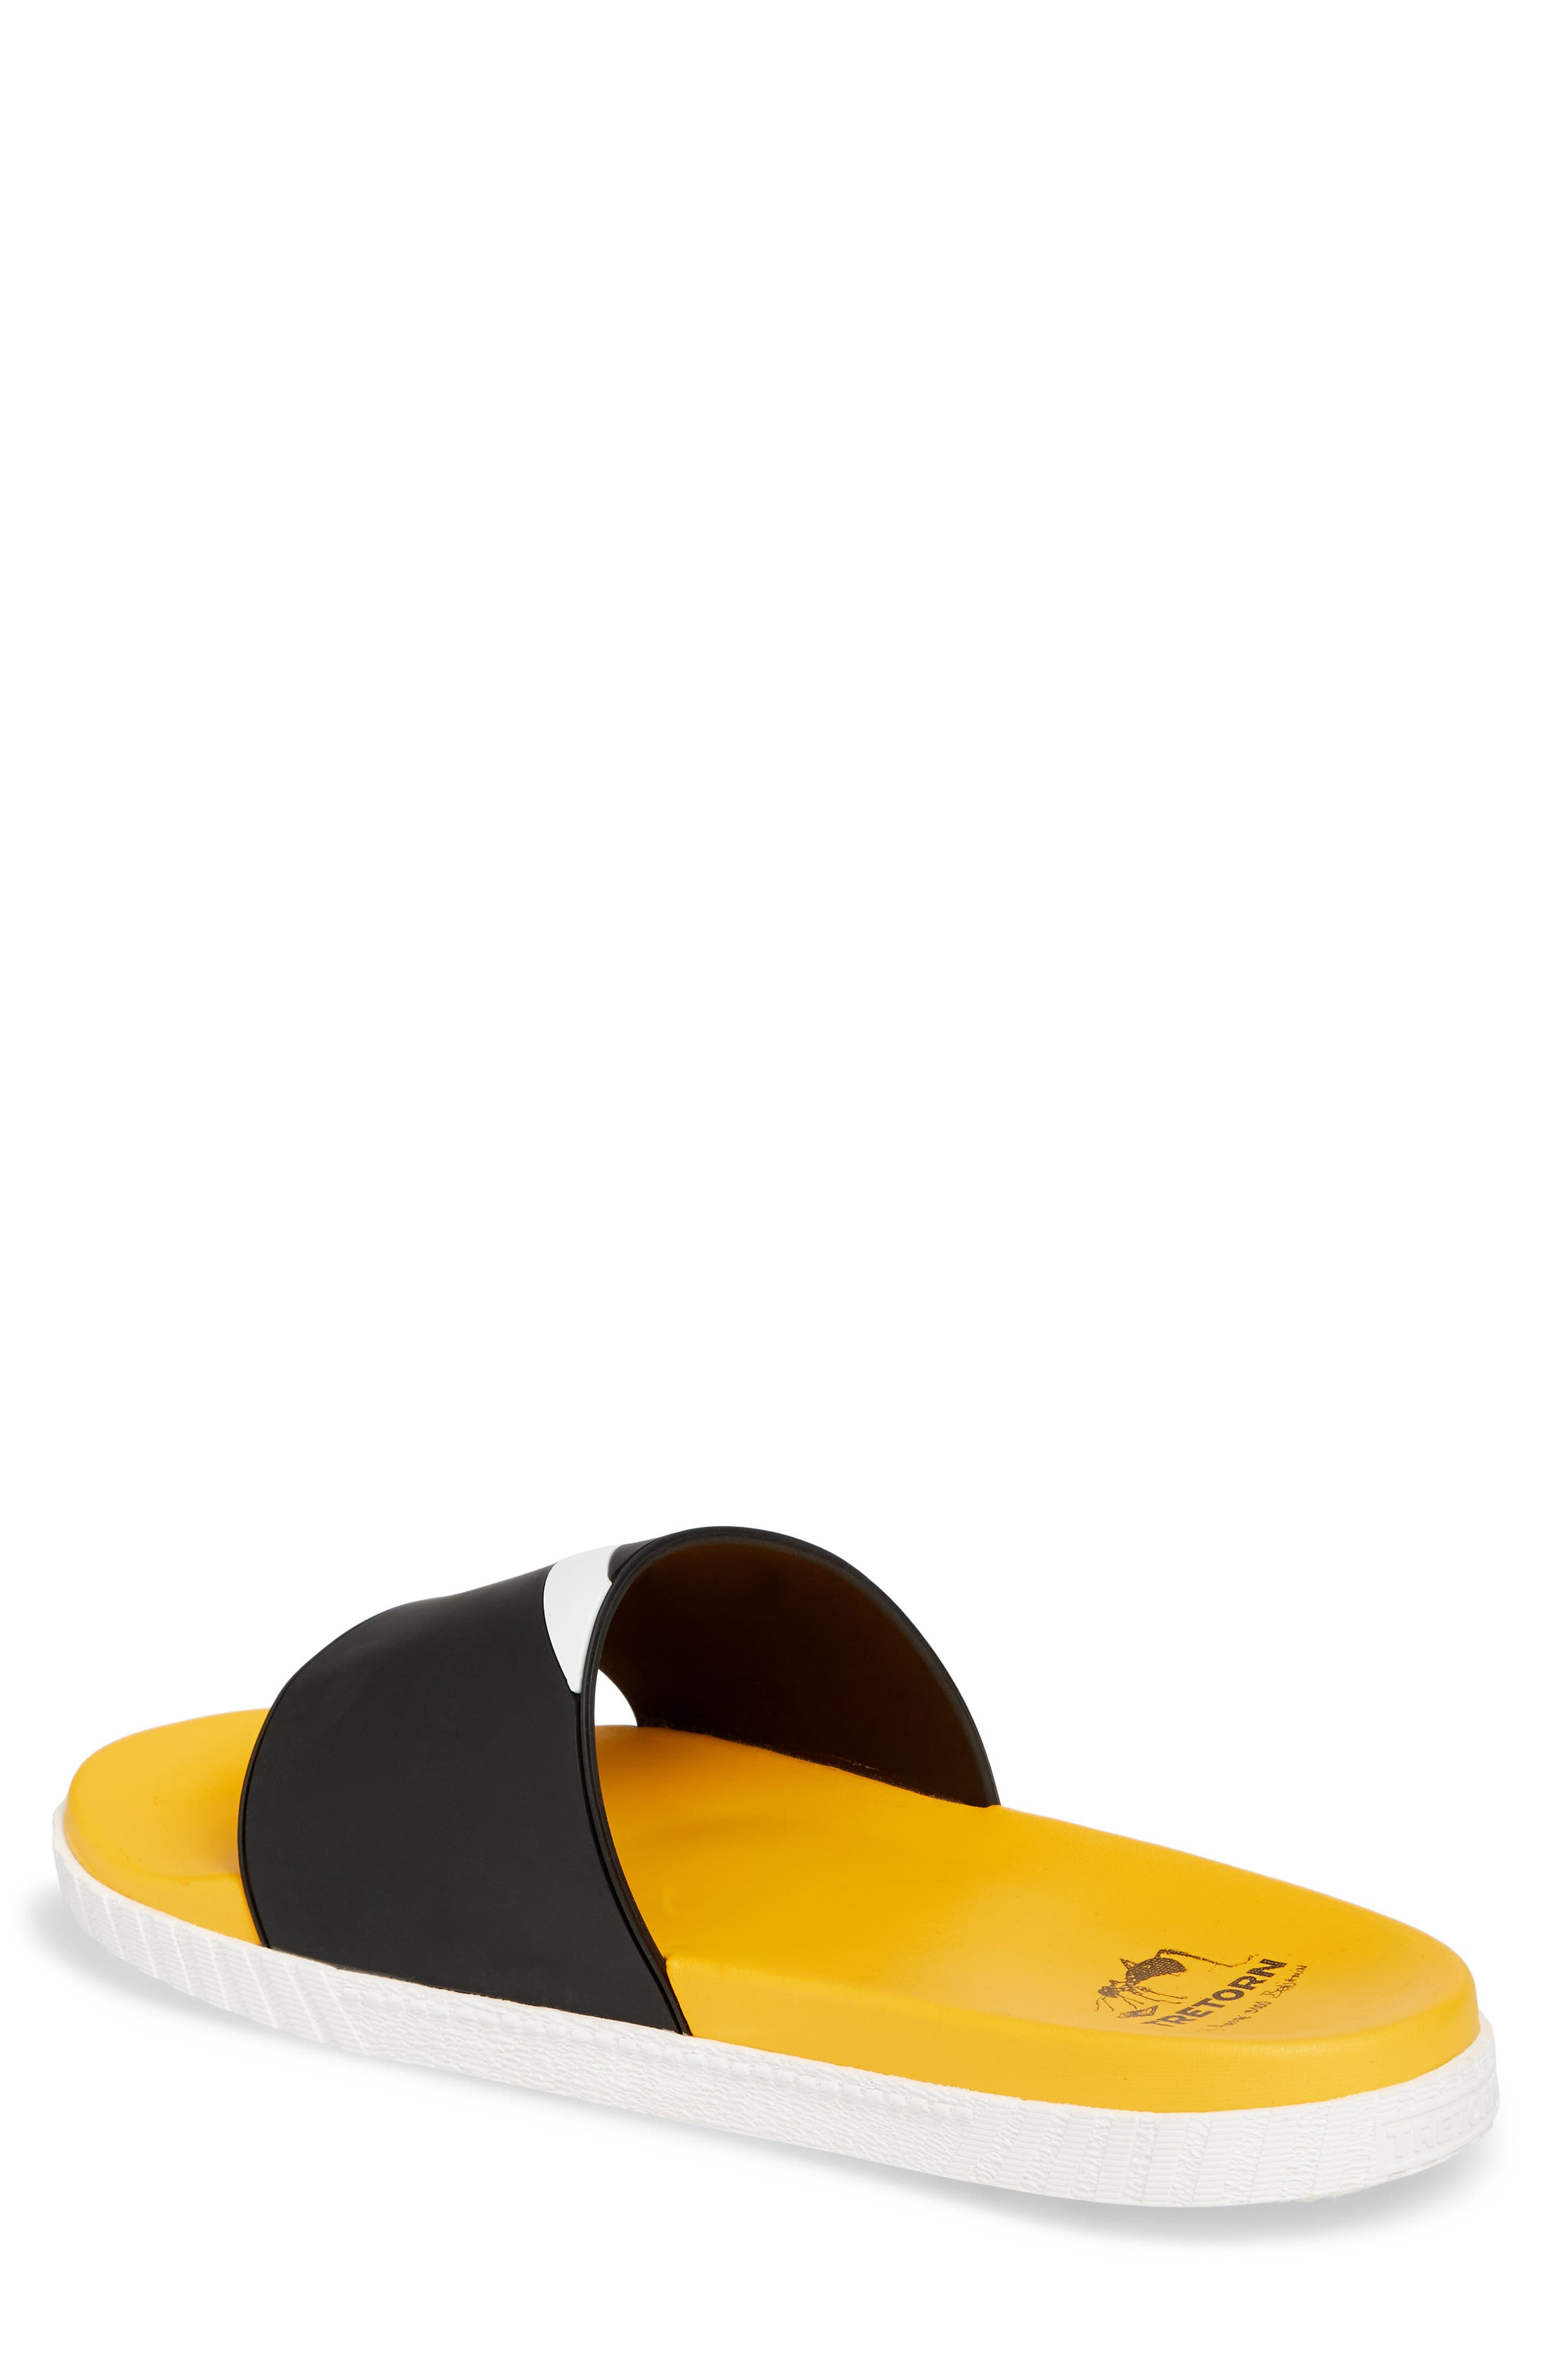 Andre 3000 Slide Sandal,                             Alternate thumbnail 2, color,                             001